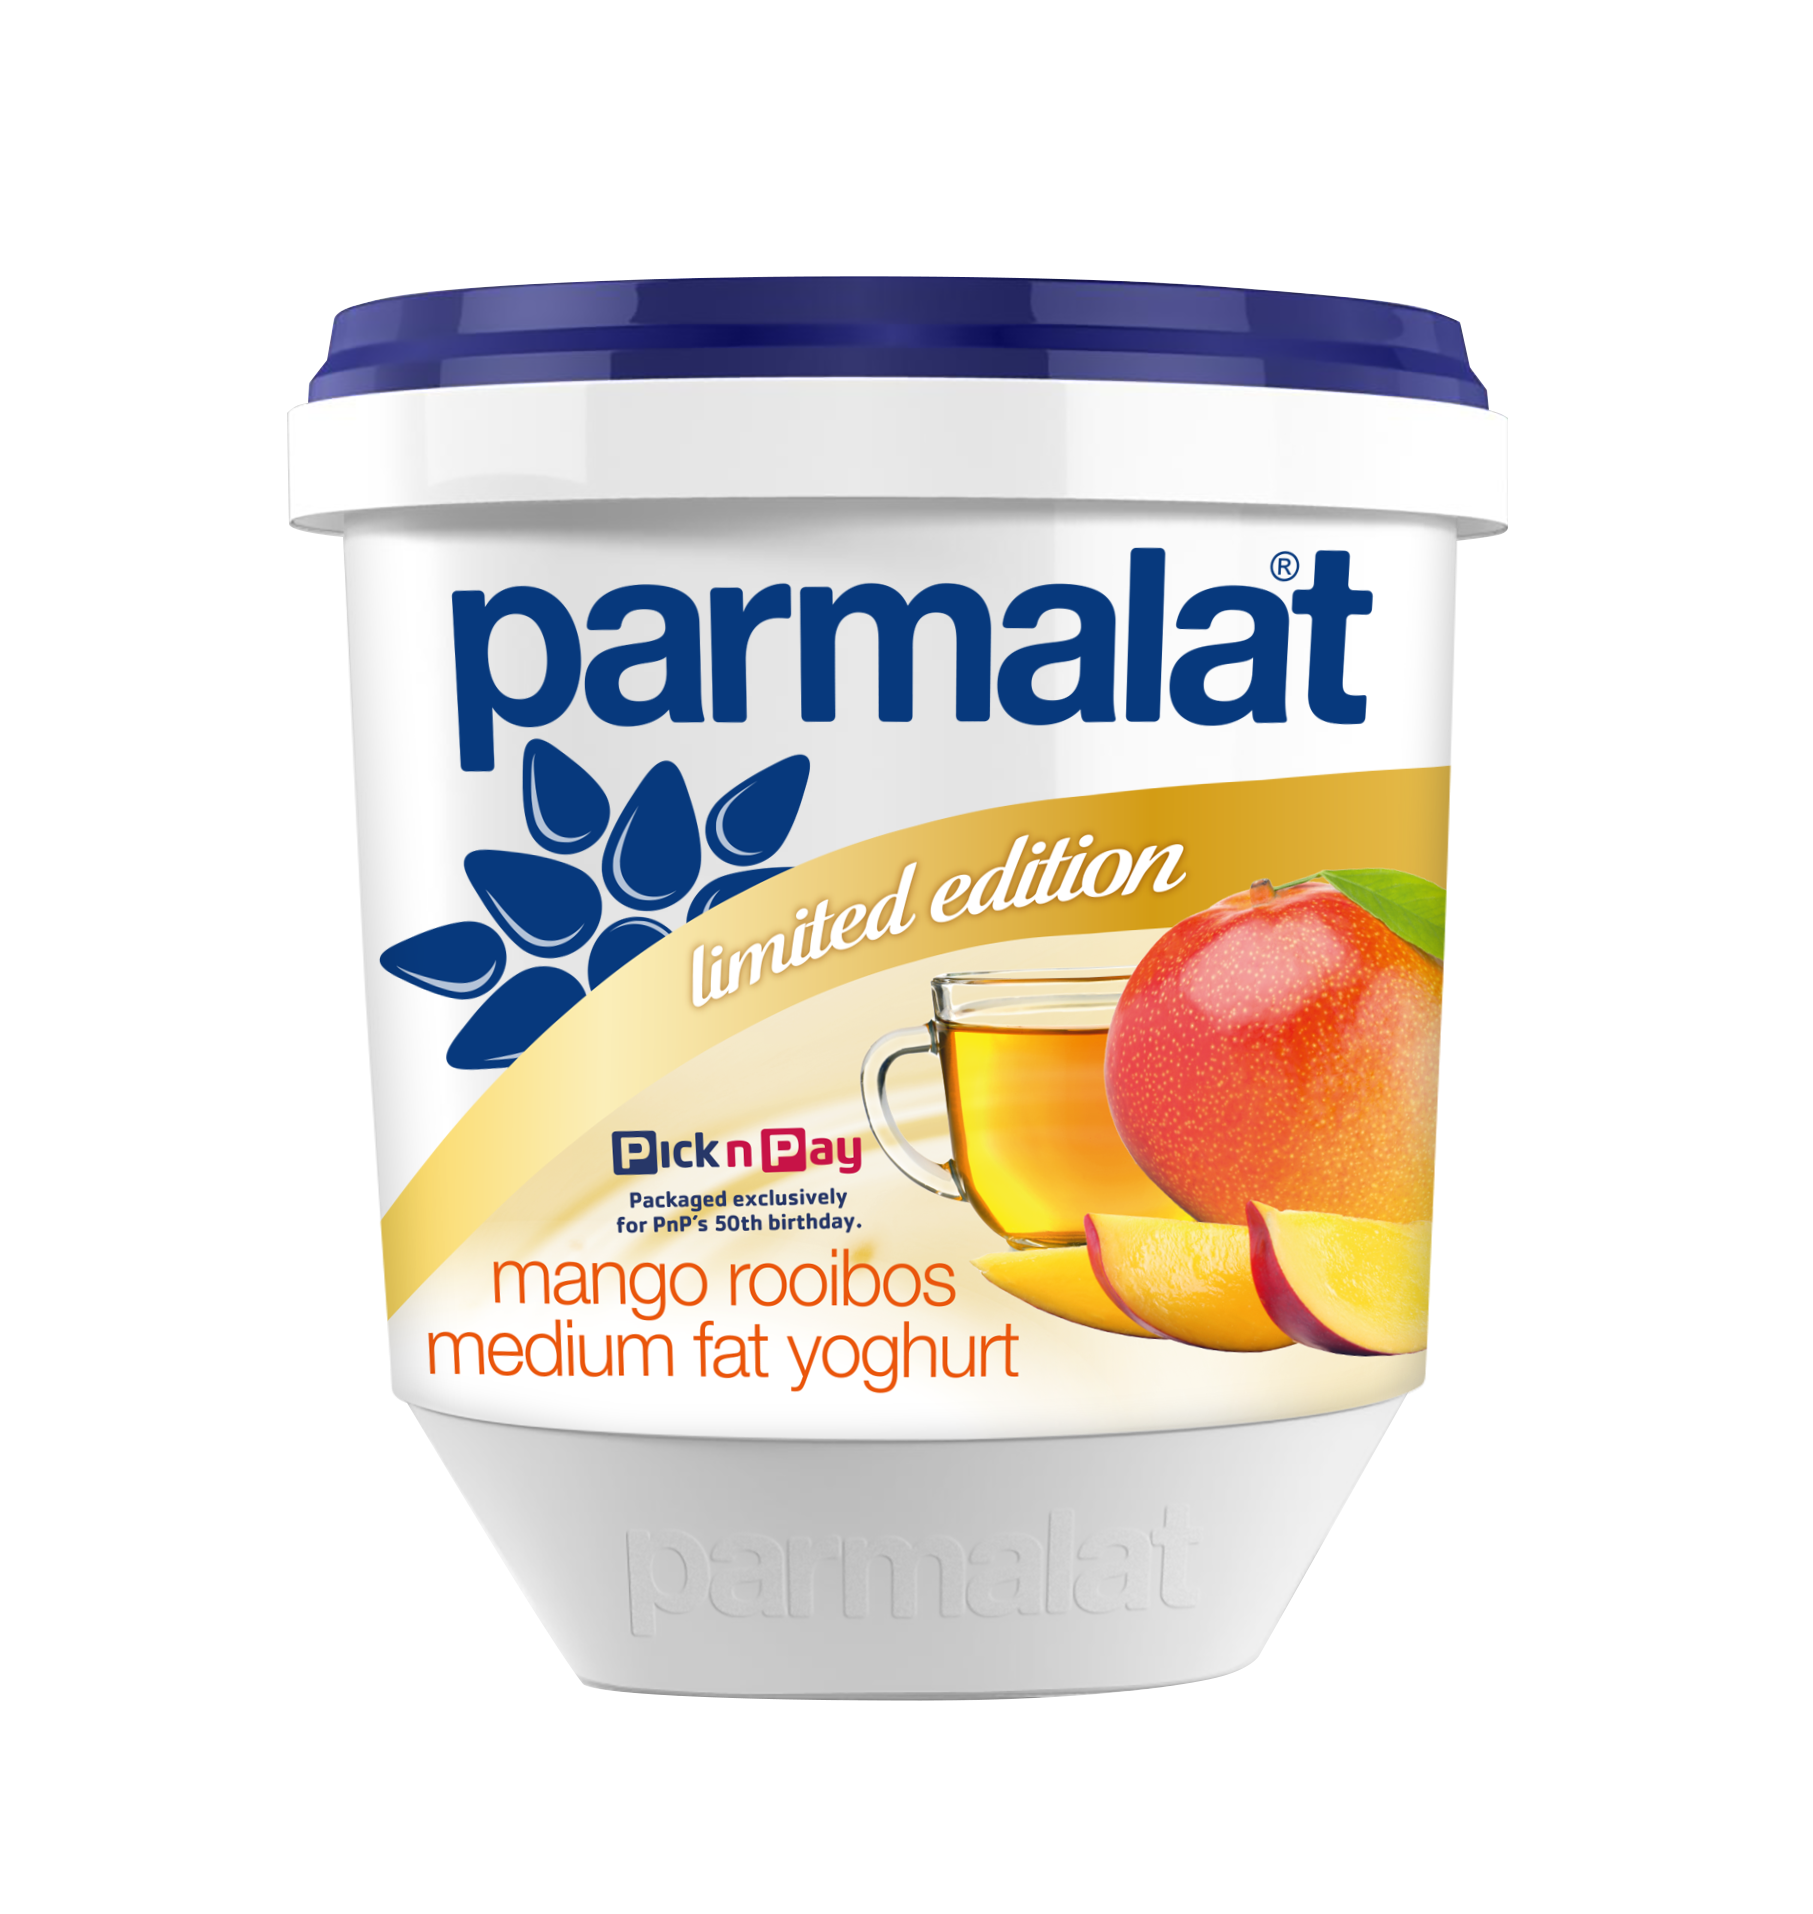 Image: The Parmalat Mango Rooibos Yoghurt is a Limited Edition product only available at Pick n Pay